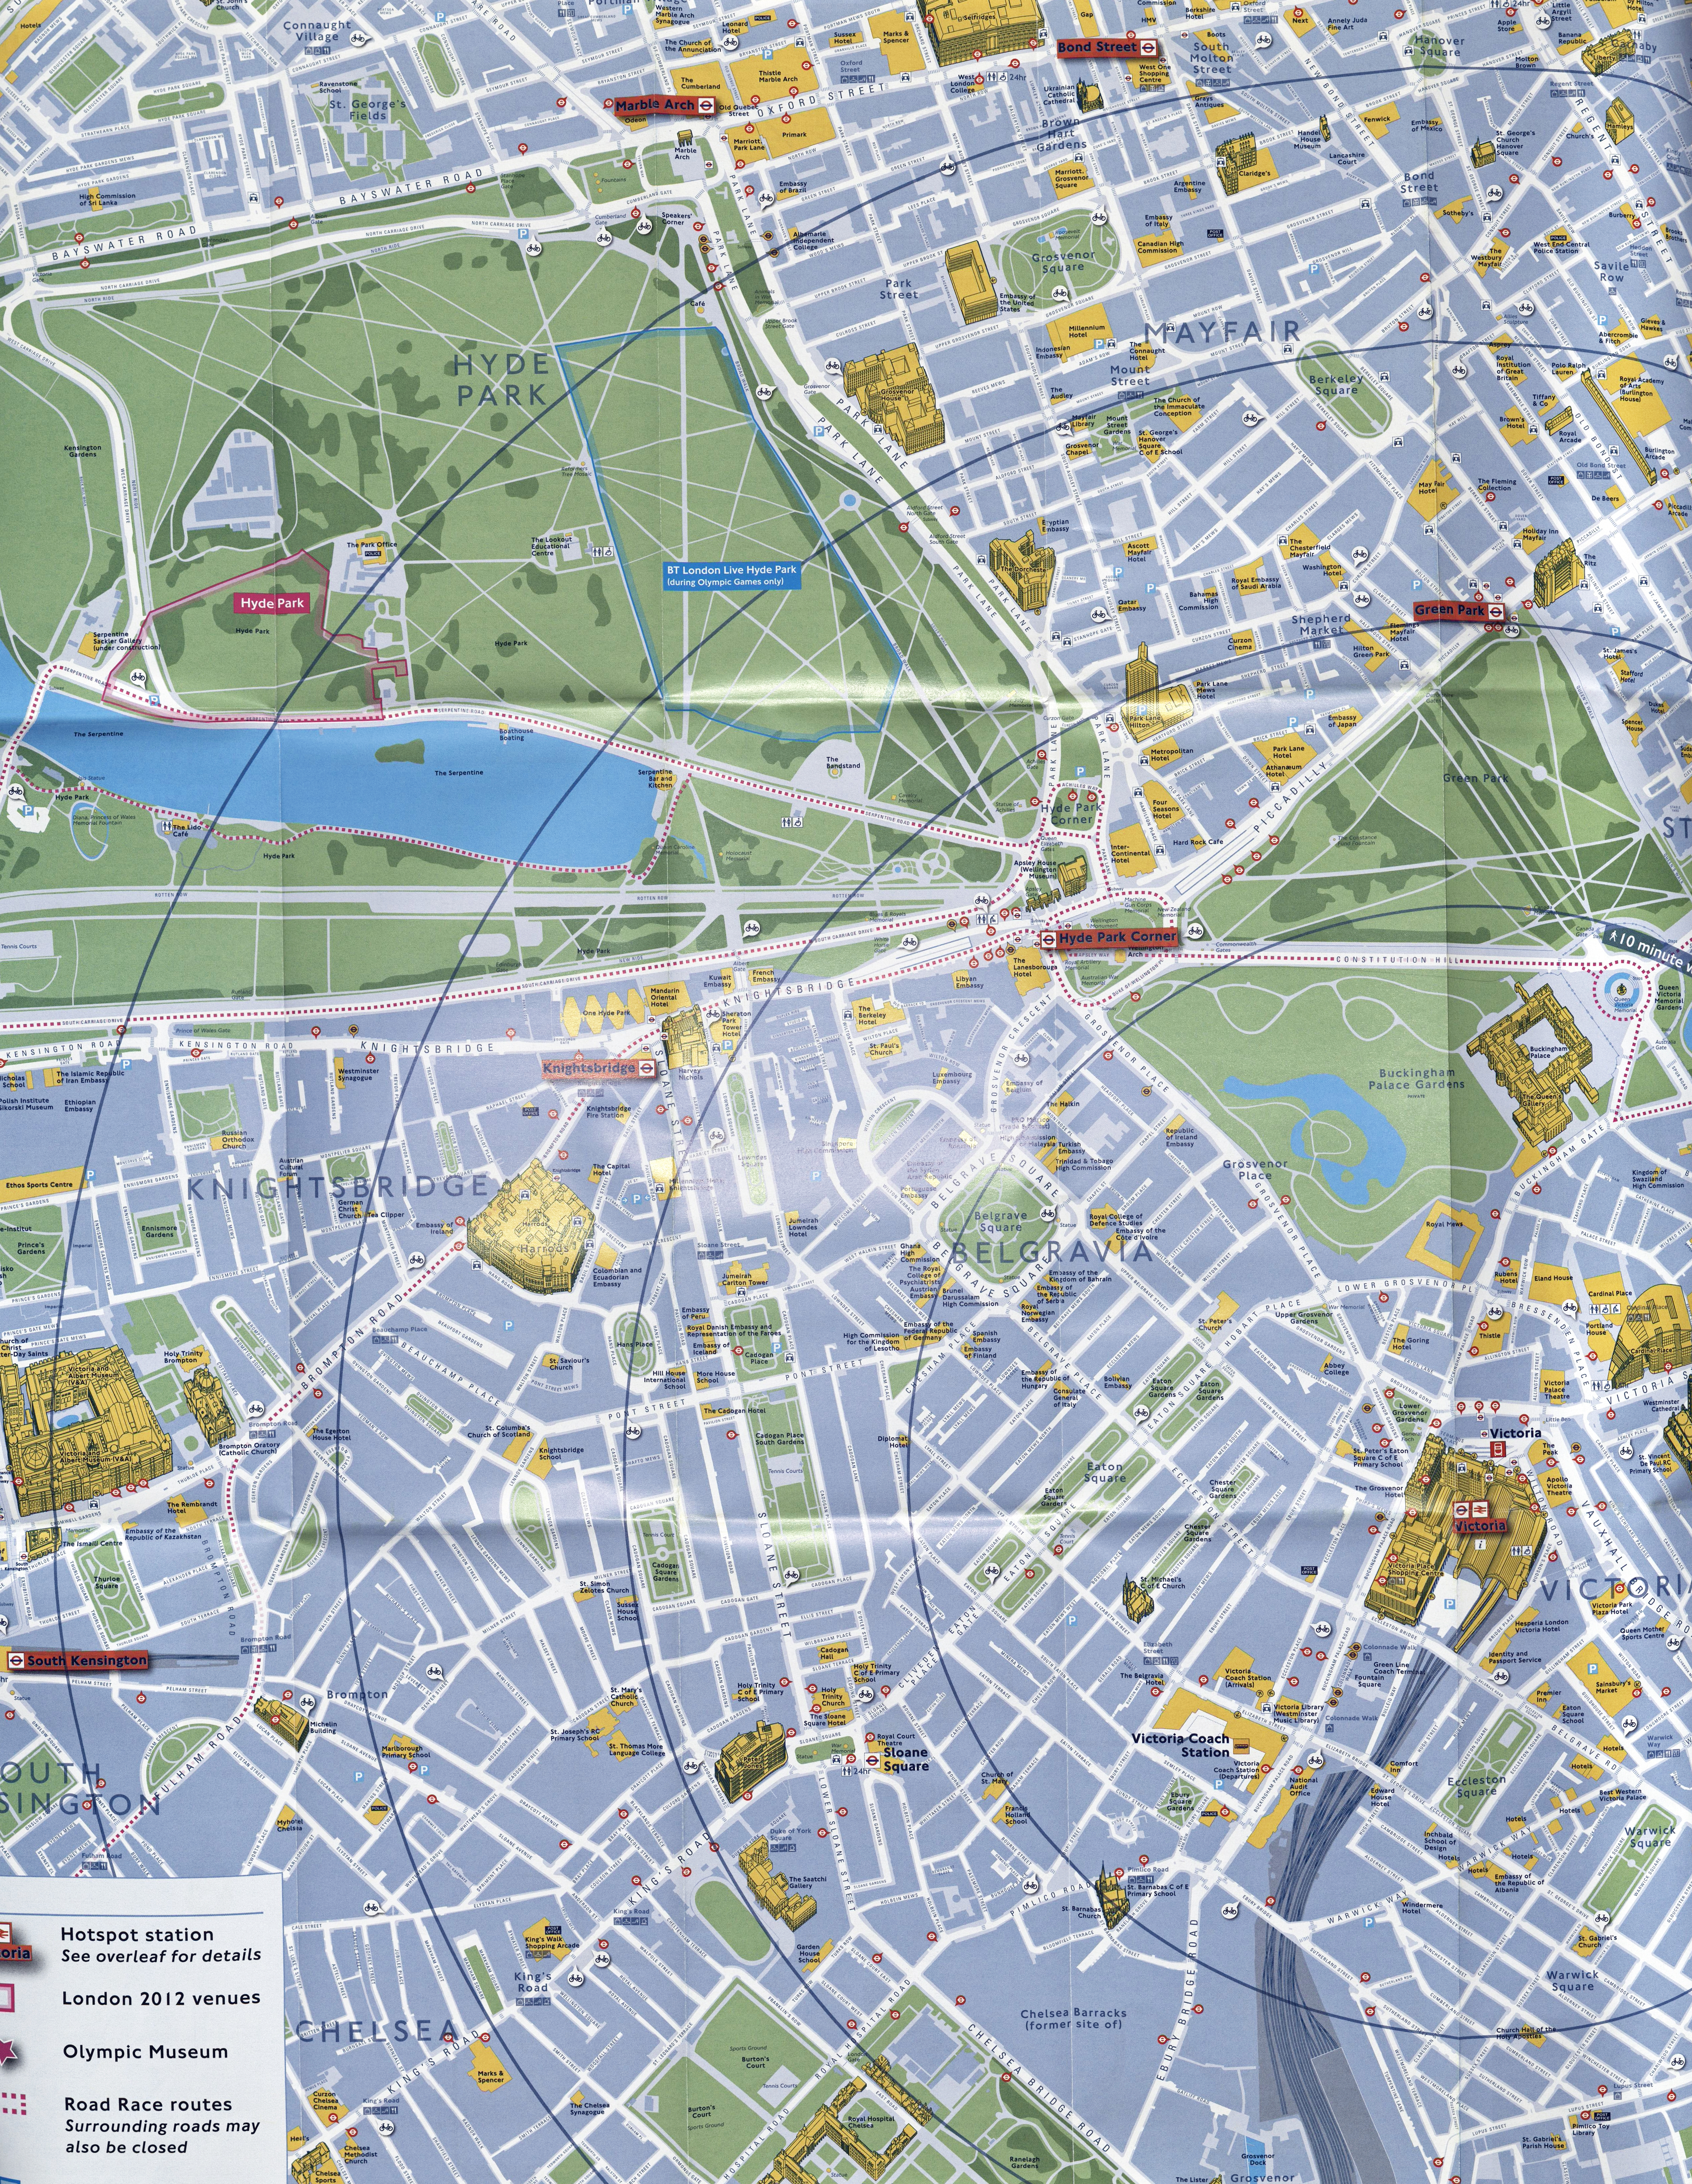 Detail from Victoria 'Why not walk it?' map. The detail included on this free map is impressive